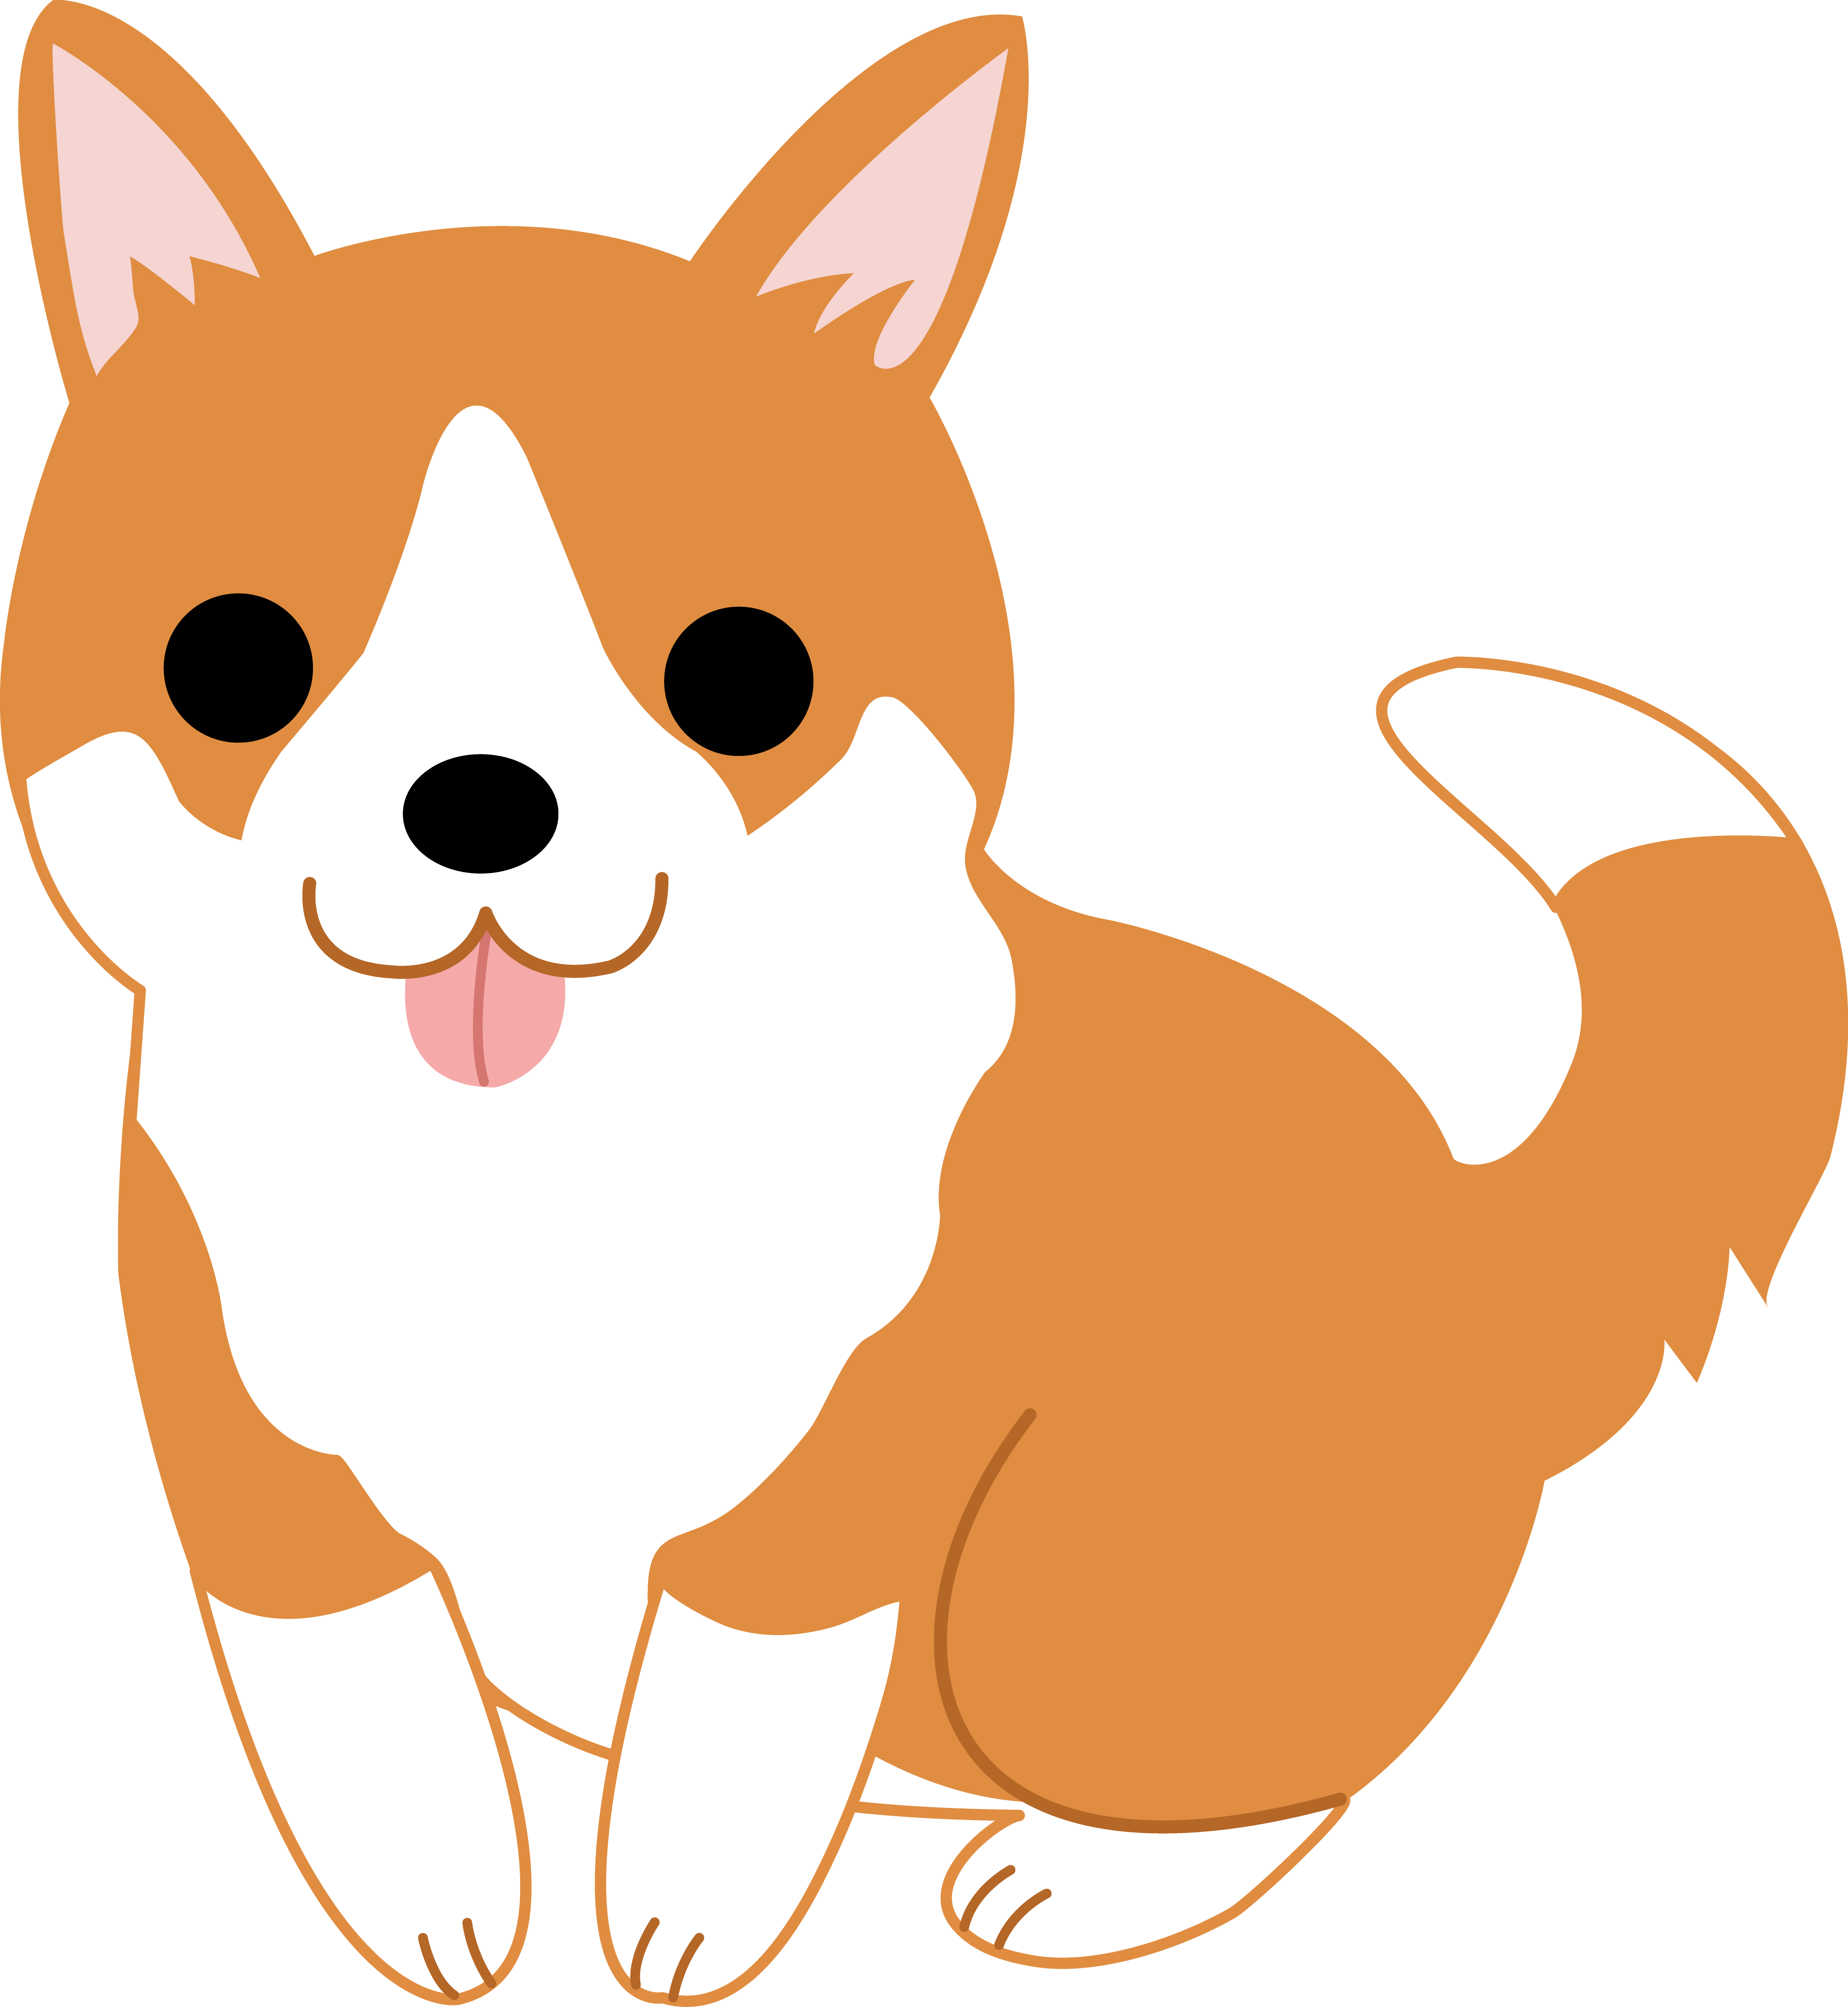 Cute Dog Clipart   Clipart Panda   Free Clipart Images